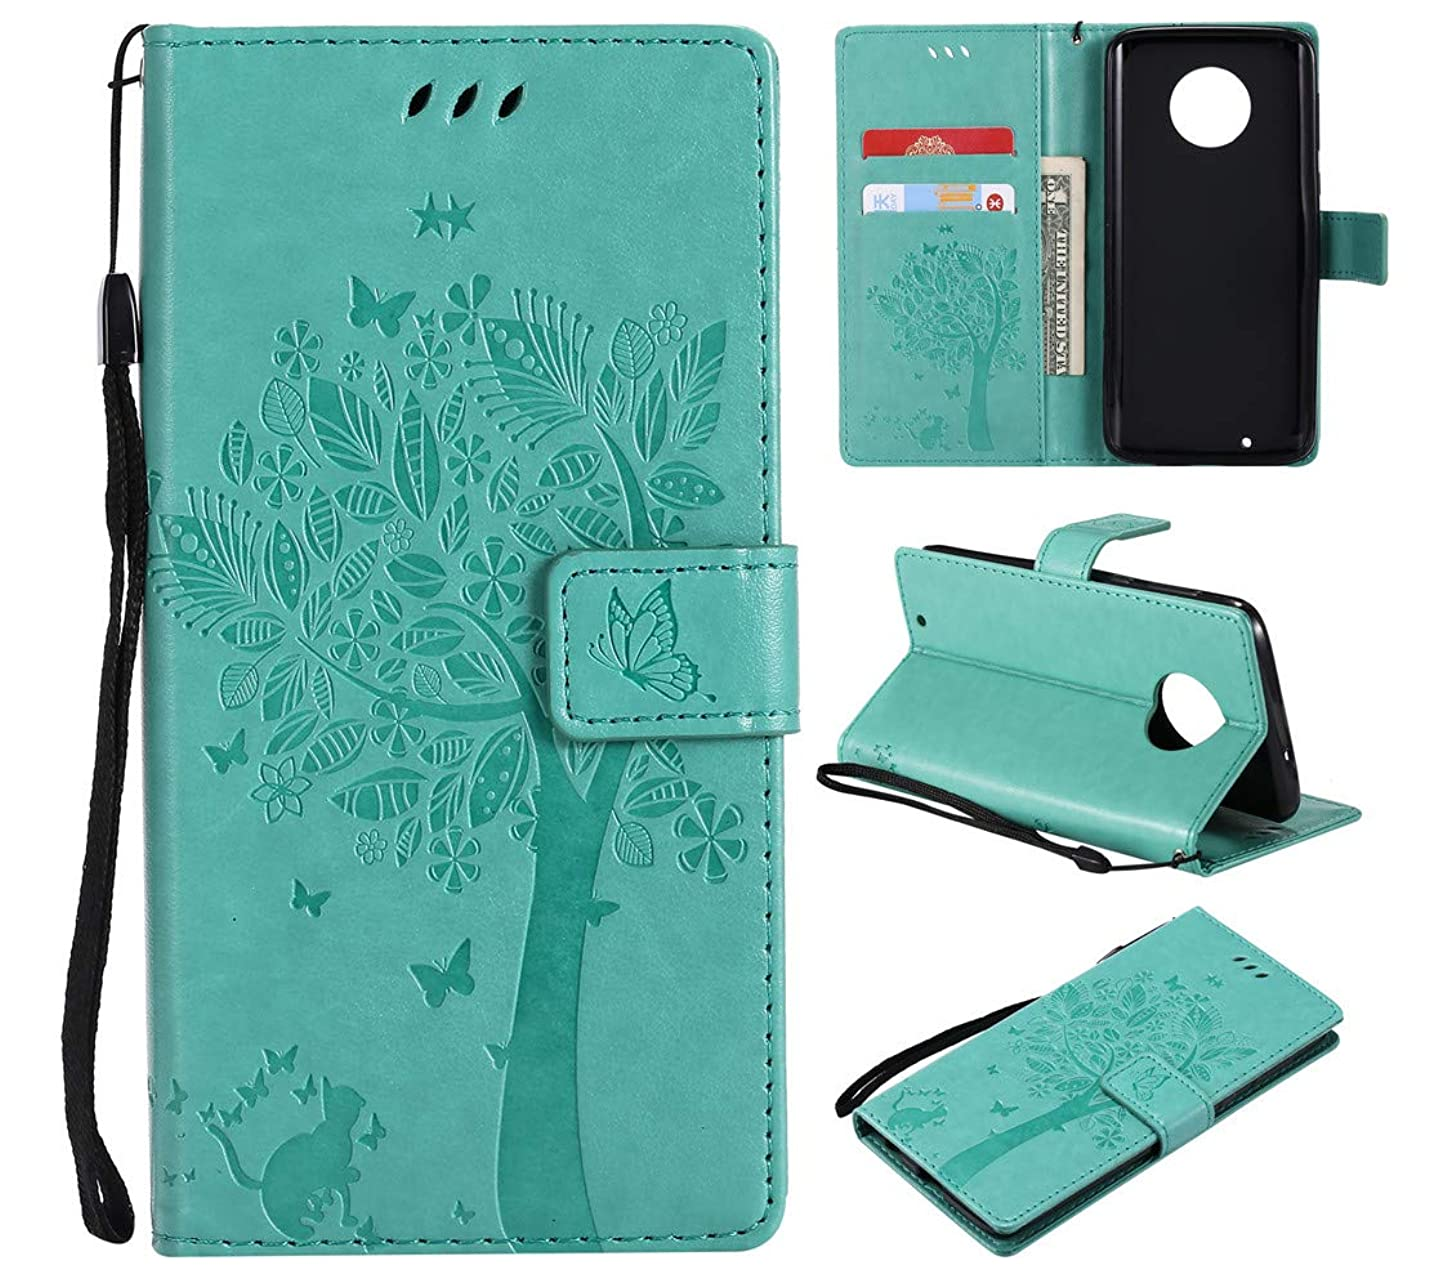 Moto G6 Case, Wallet Case,MEUPZZK Floral Flower Tree & Cat Embossed Flip Kickstand with Card Holders,Magnetic Closure,Wrist Strap,Protection Cover for Motorola Moto G6 (Green)